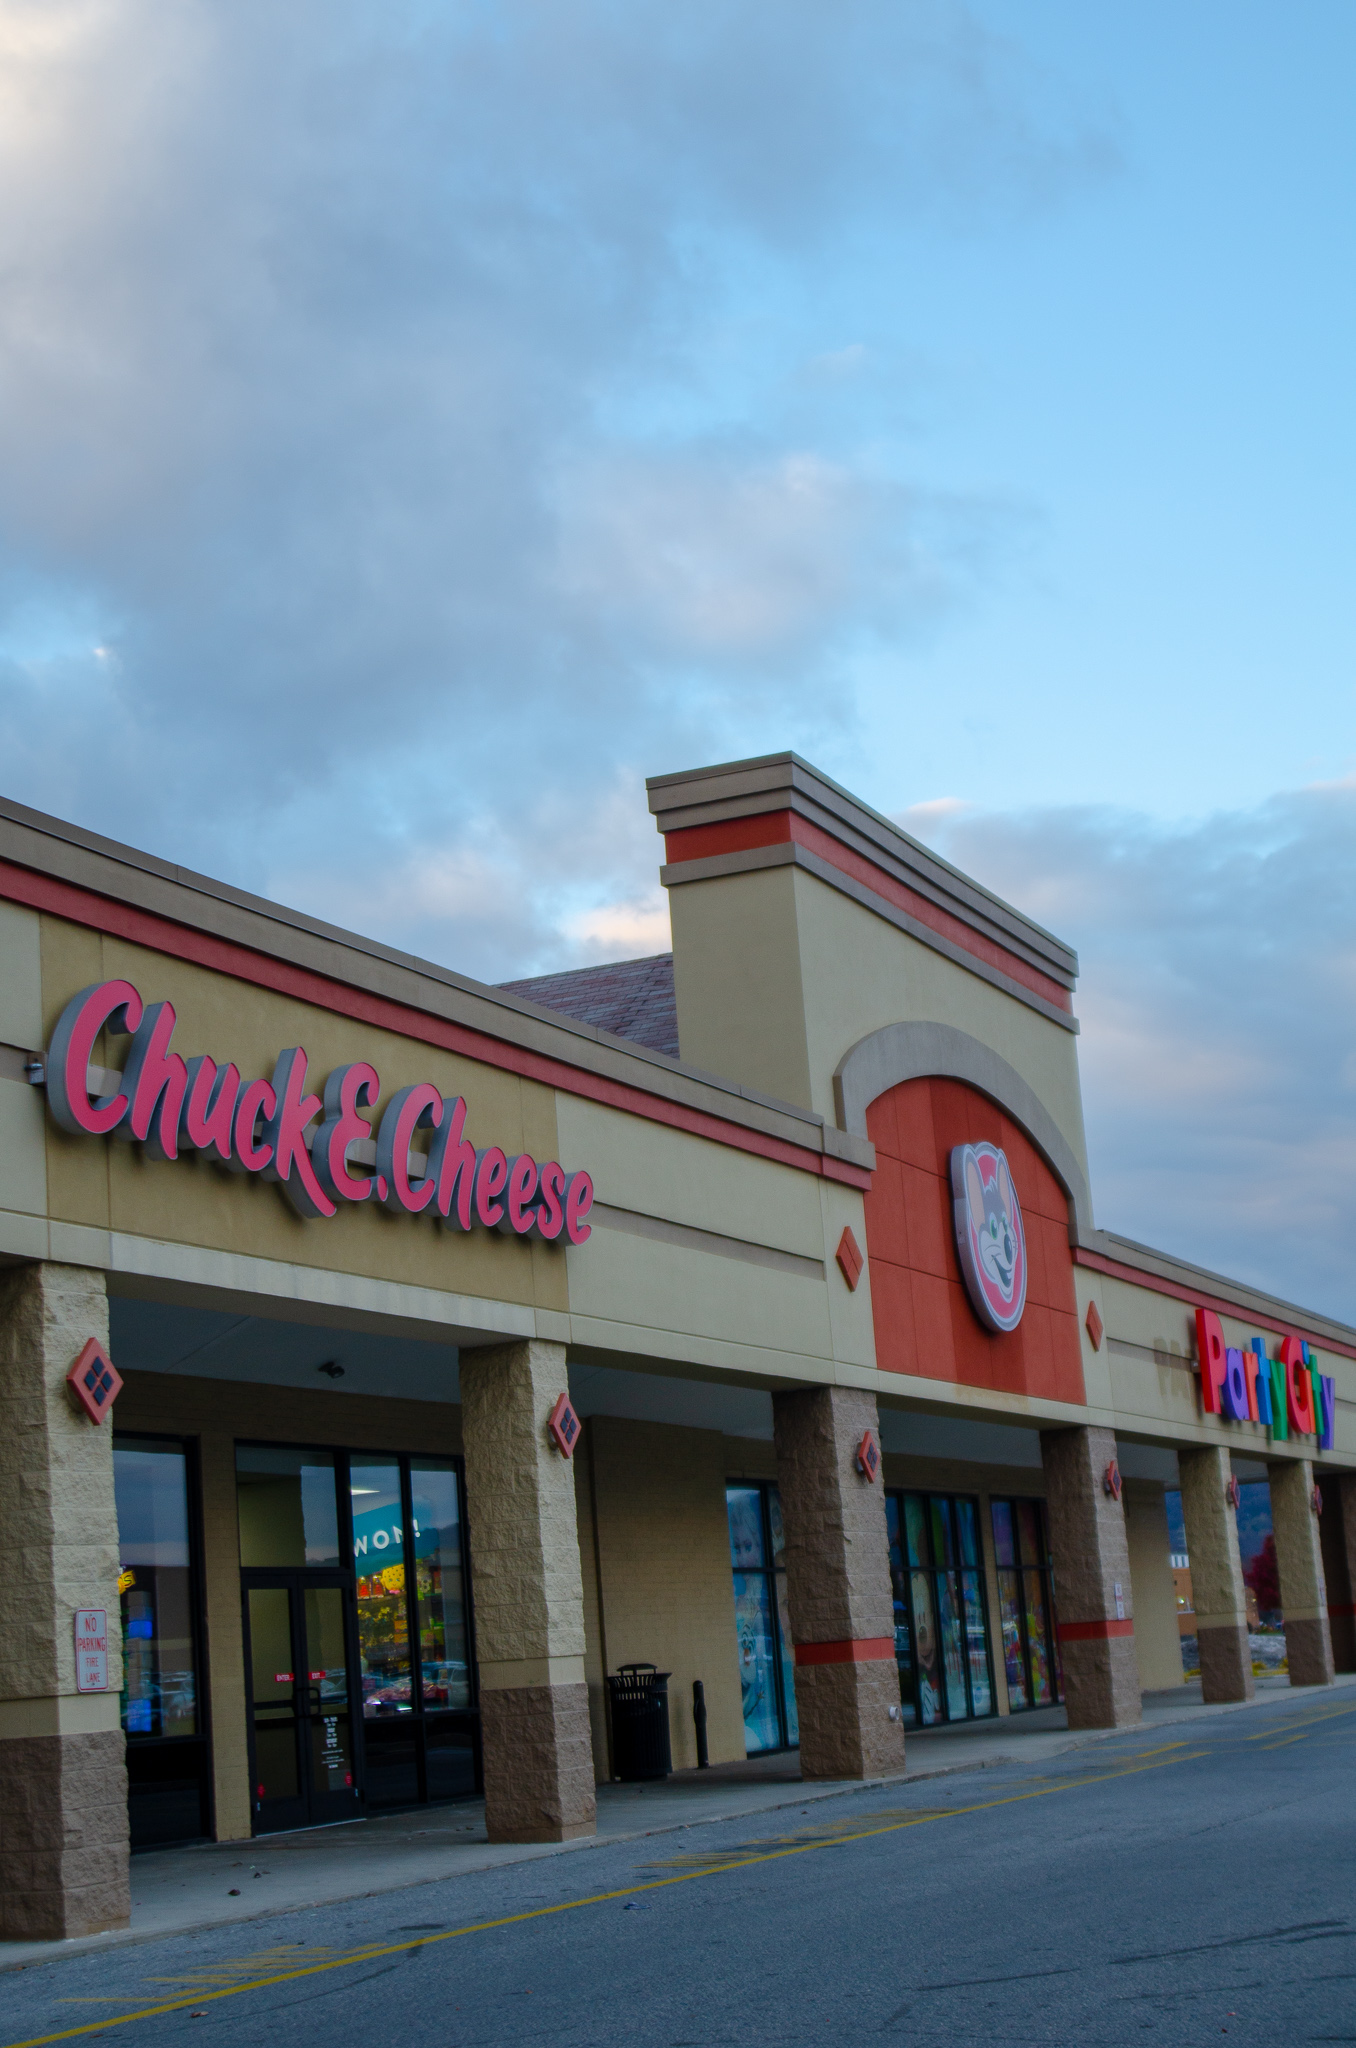 chuck e cheeses back and better than ever - she got guts